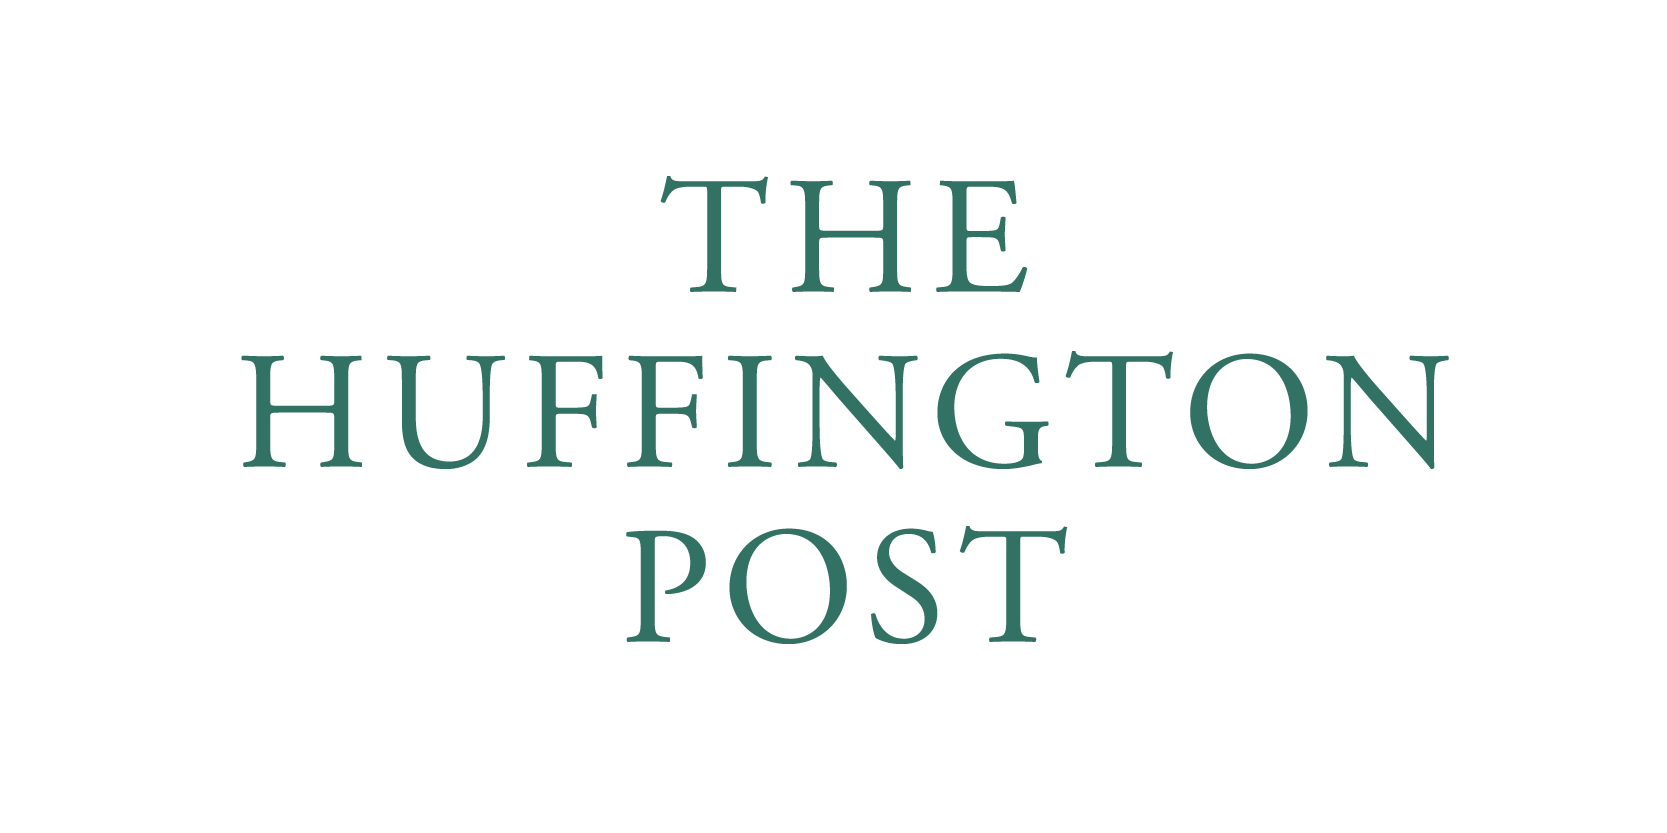 the huffington post logo corbie fieldwalker real estate films vancouver